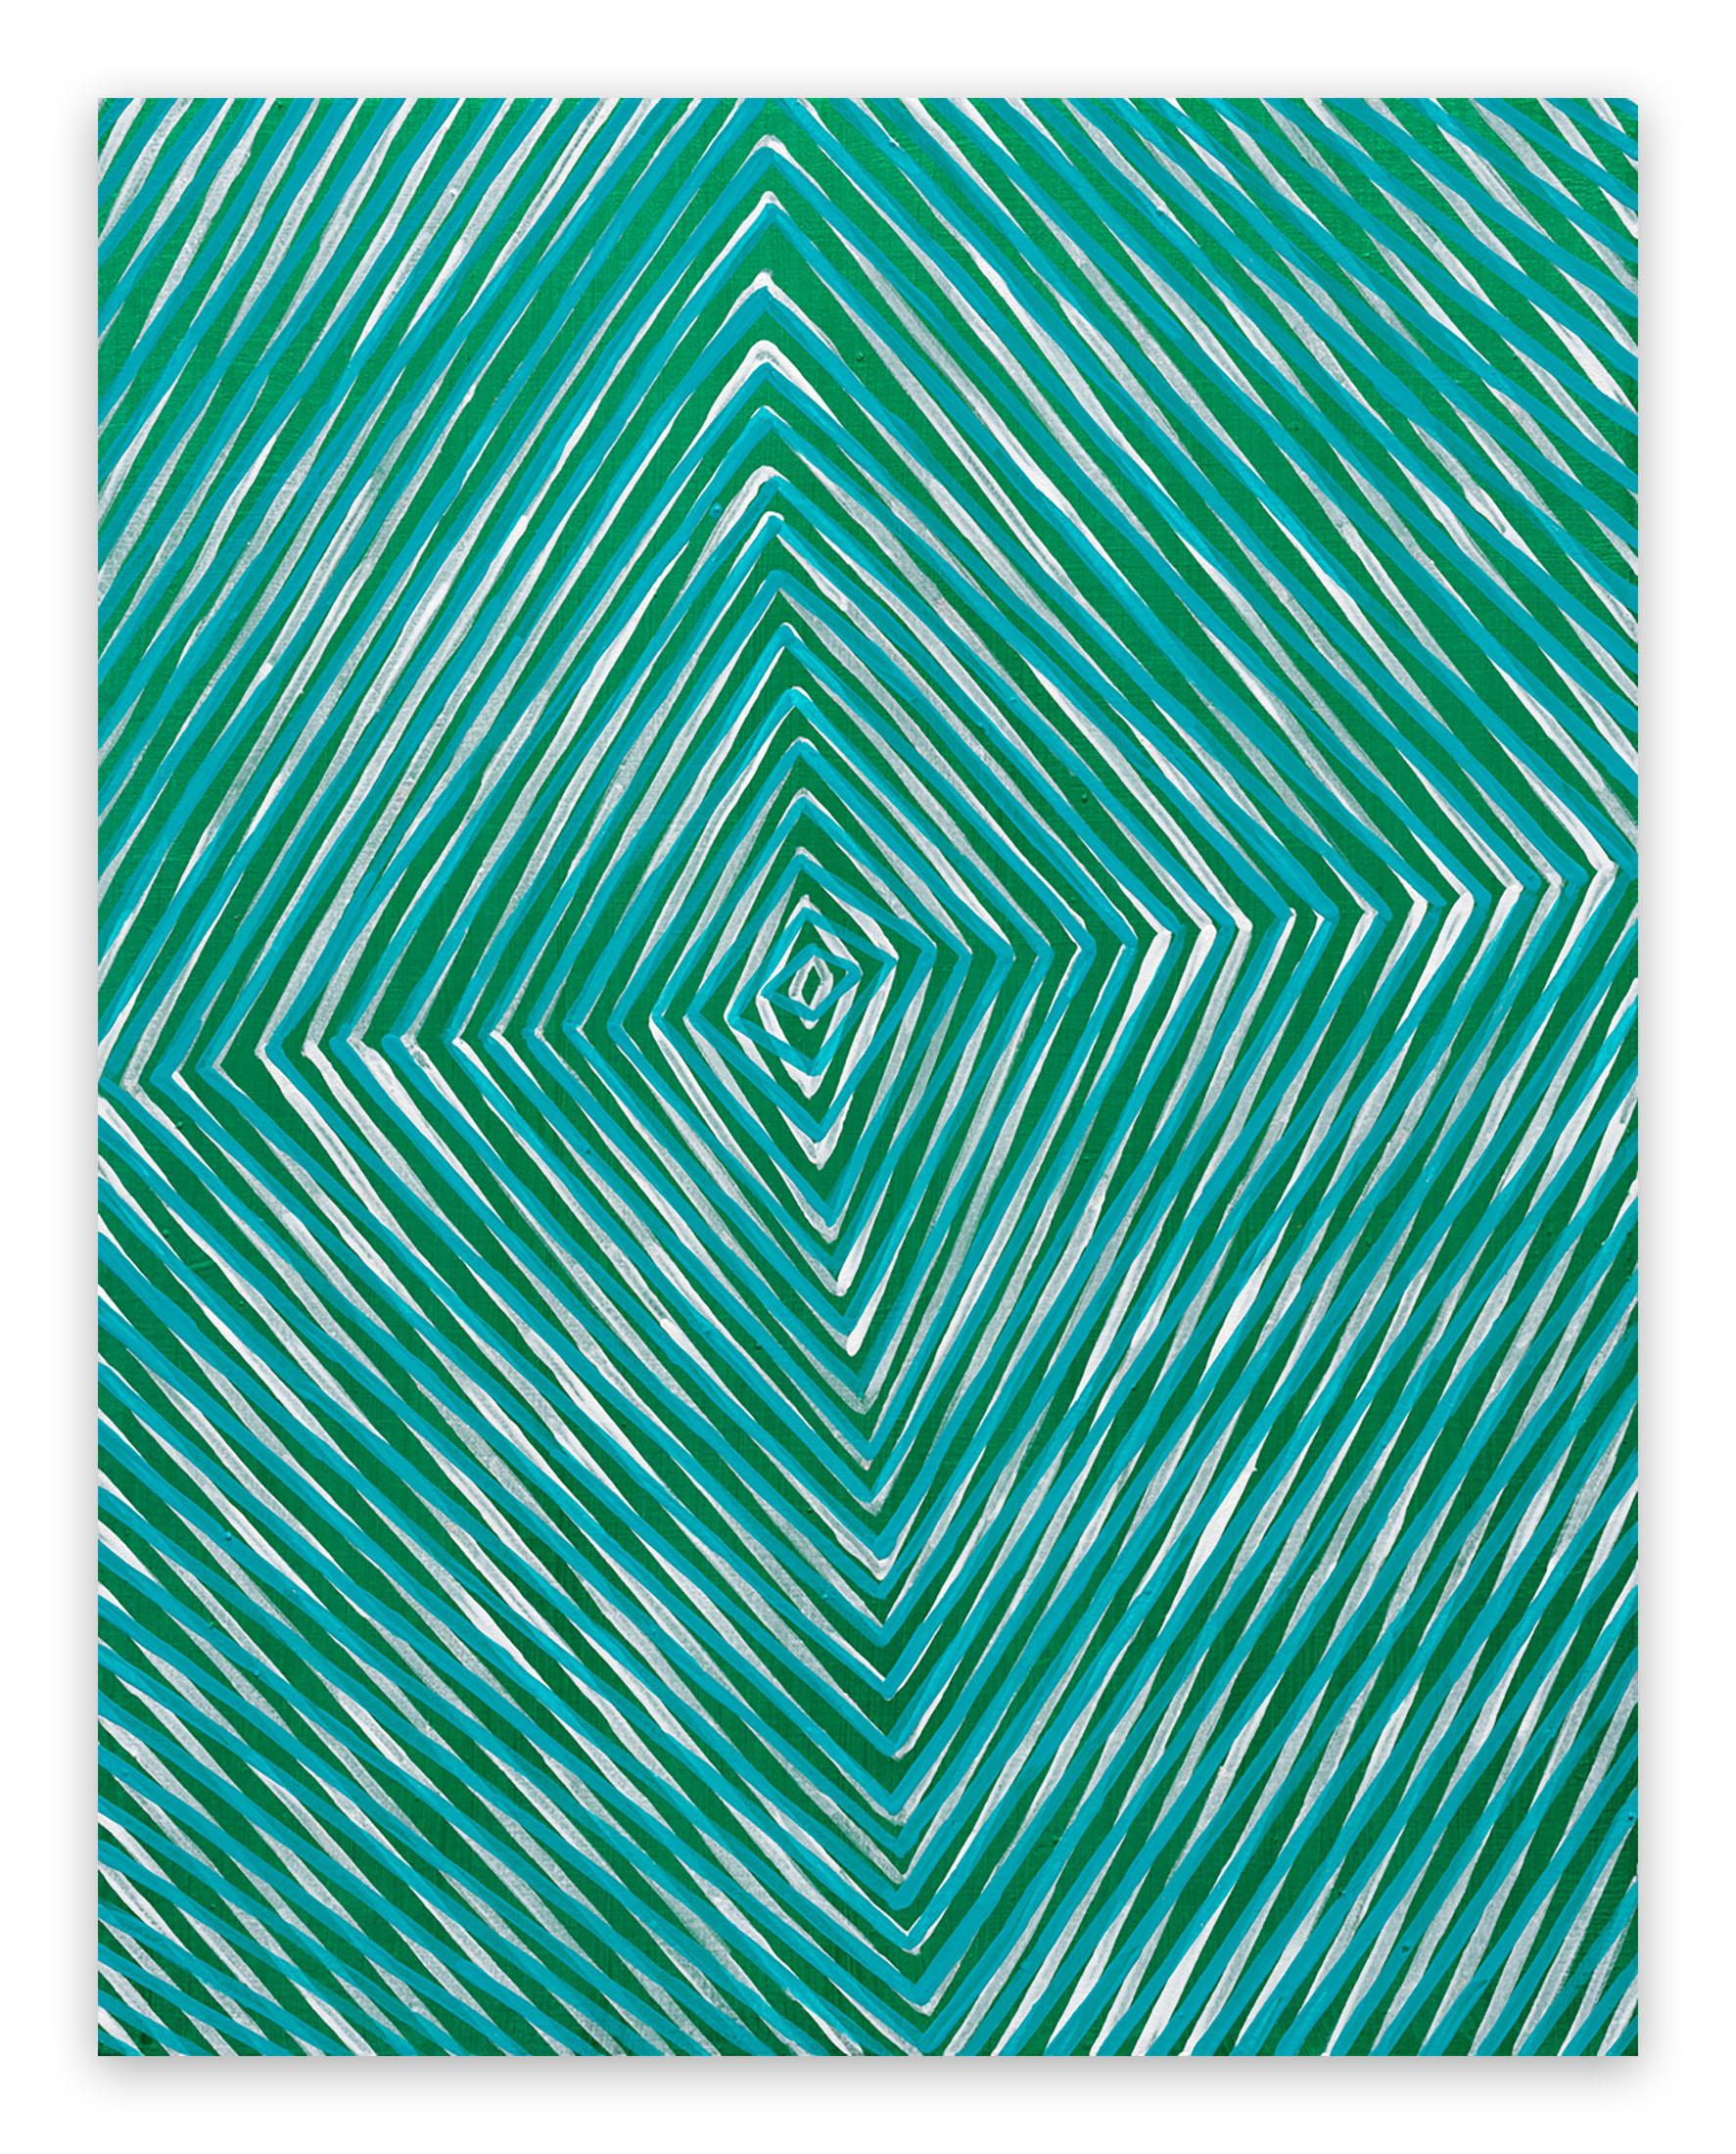 Ocean Forest Sound (Abstract Painting)